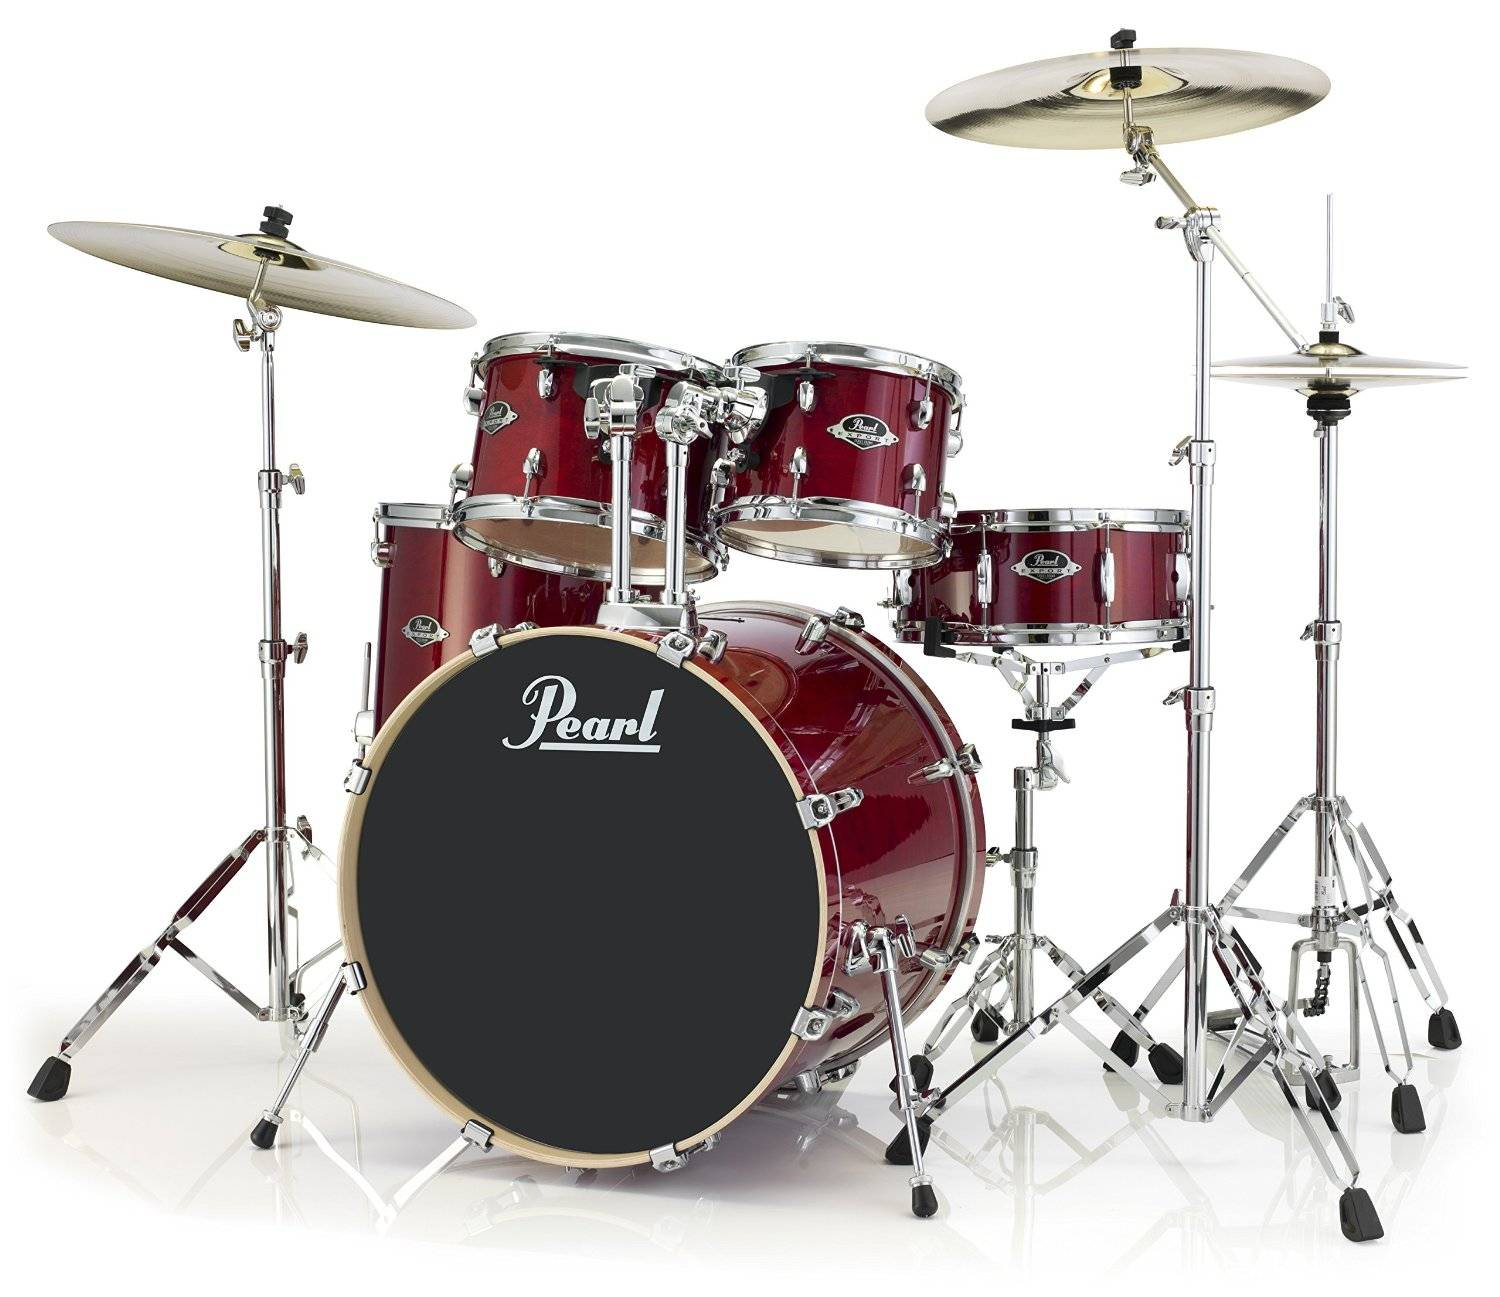 The Only Pearl Export Series Review Youll Need To Read